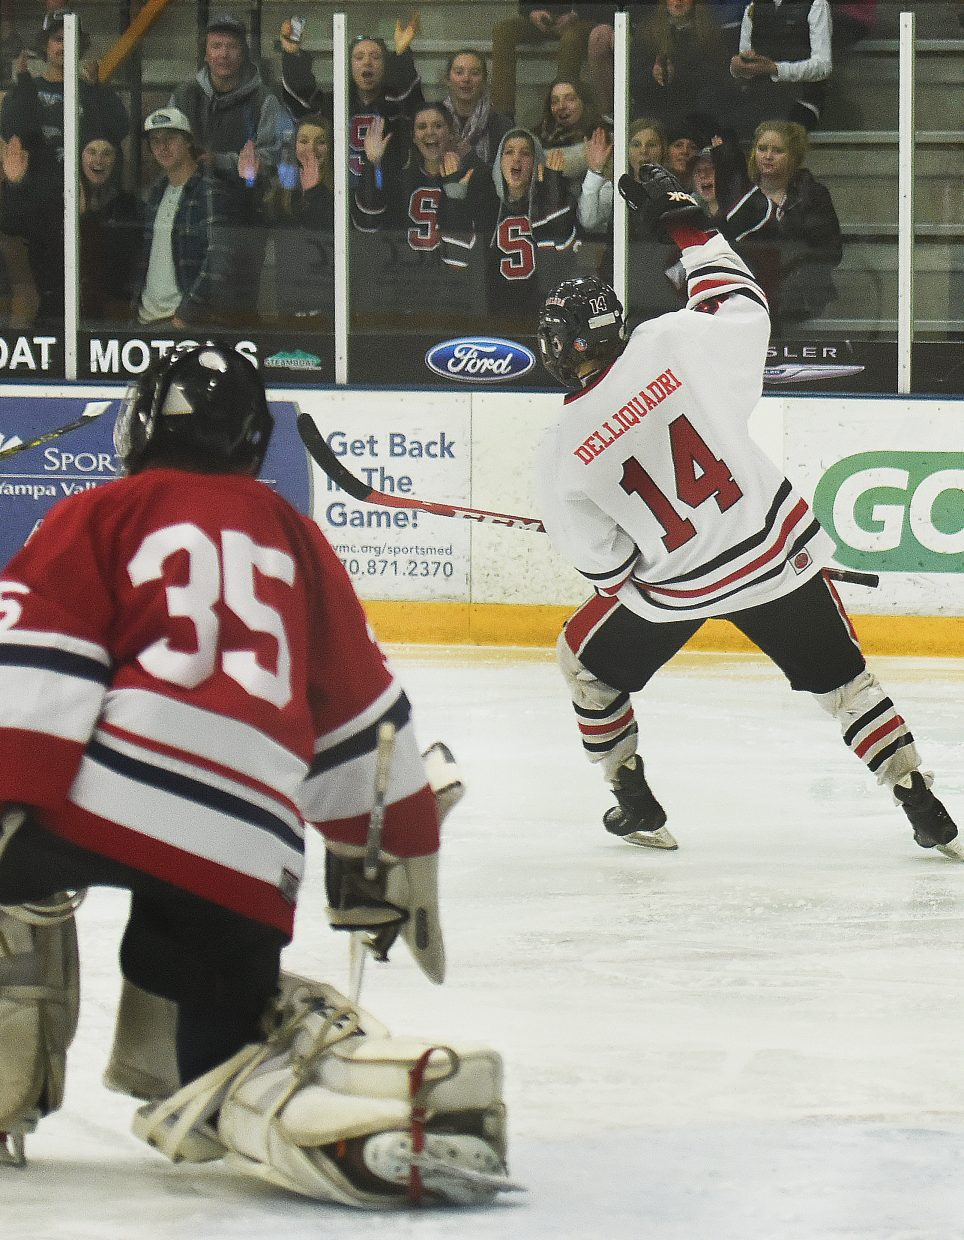 Steamboat's Cisco DelliQuadri pumps his fist as the home fans cheer on Saturday after he scored a shorthanded goal against in a 10-2 win against Liberty.